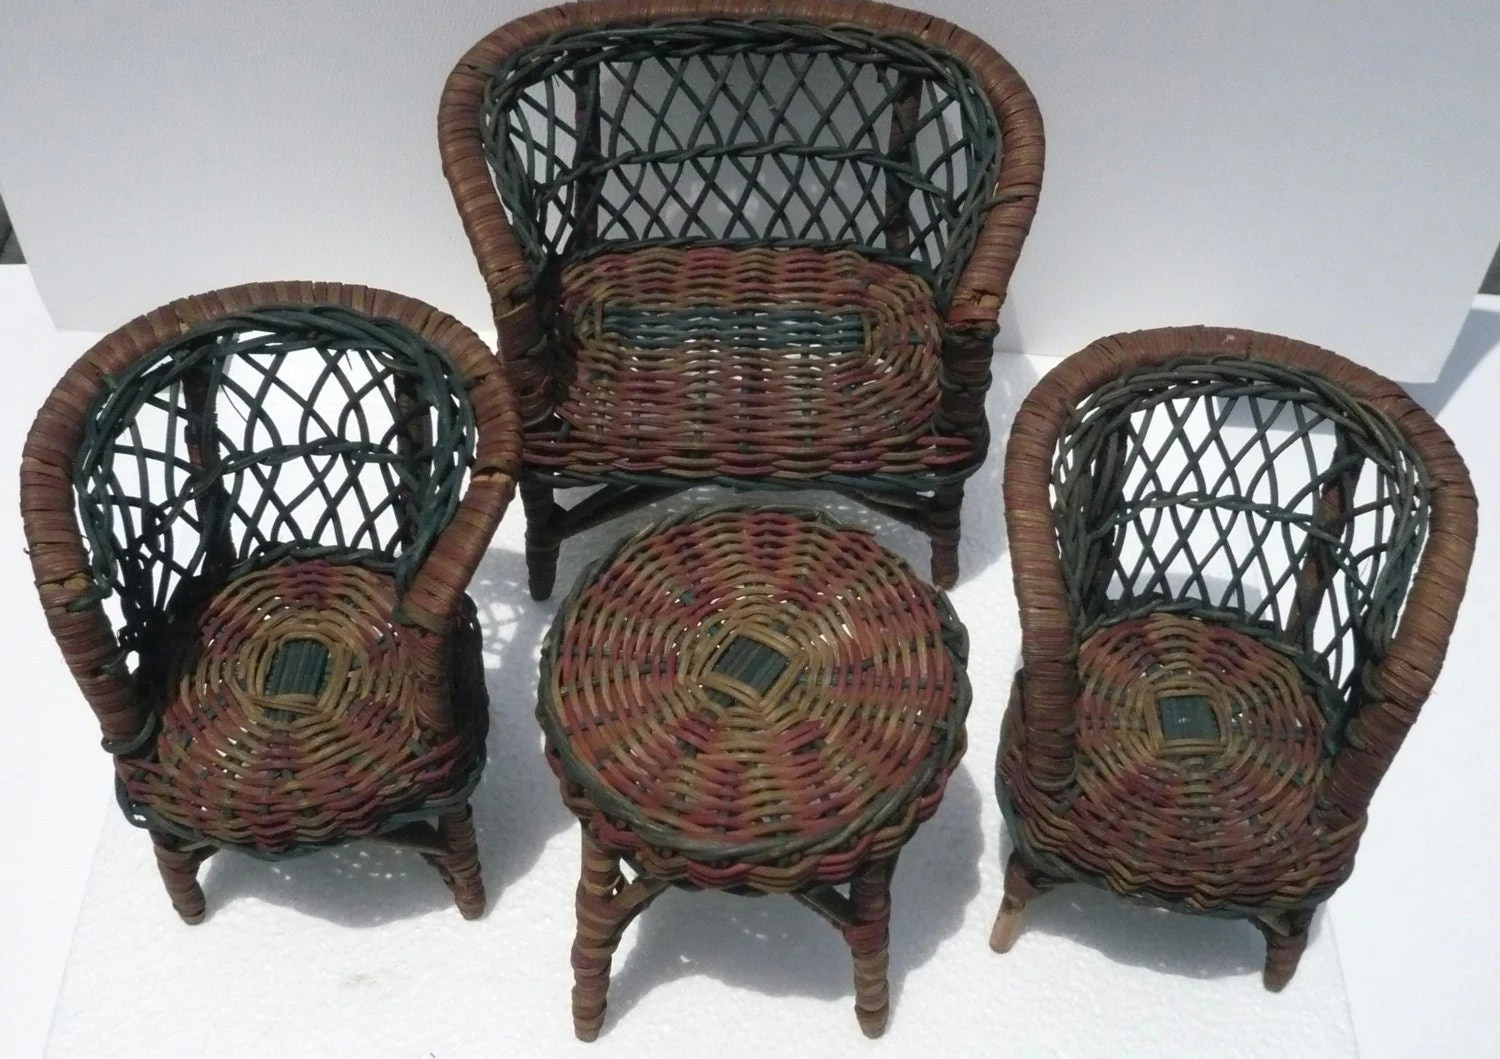 antique wicker chairs game of throne chair interior design for home ideas furniture